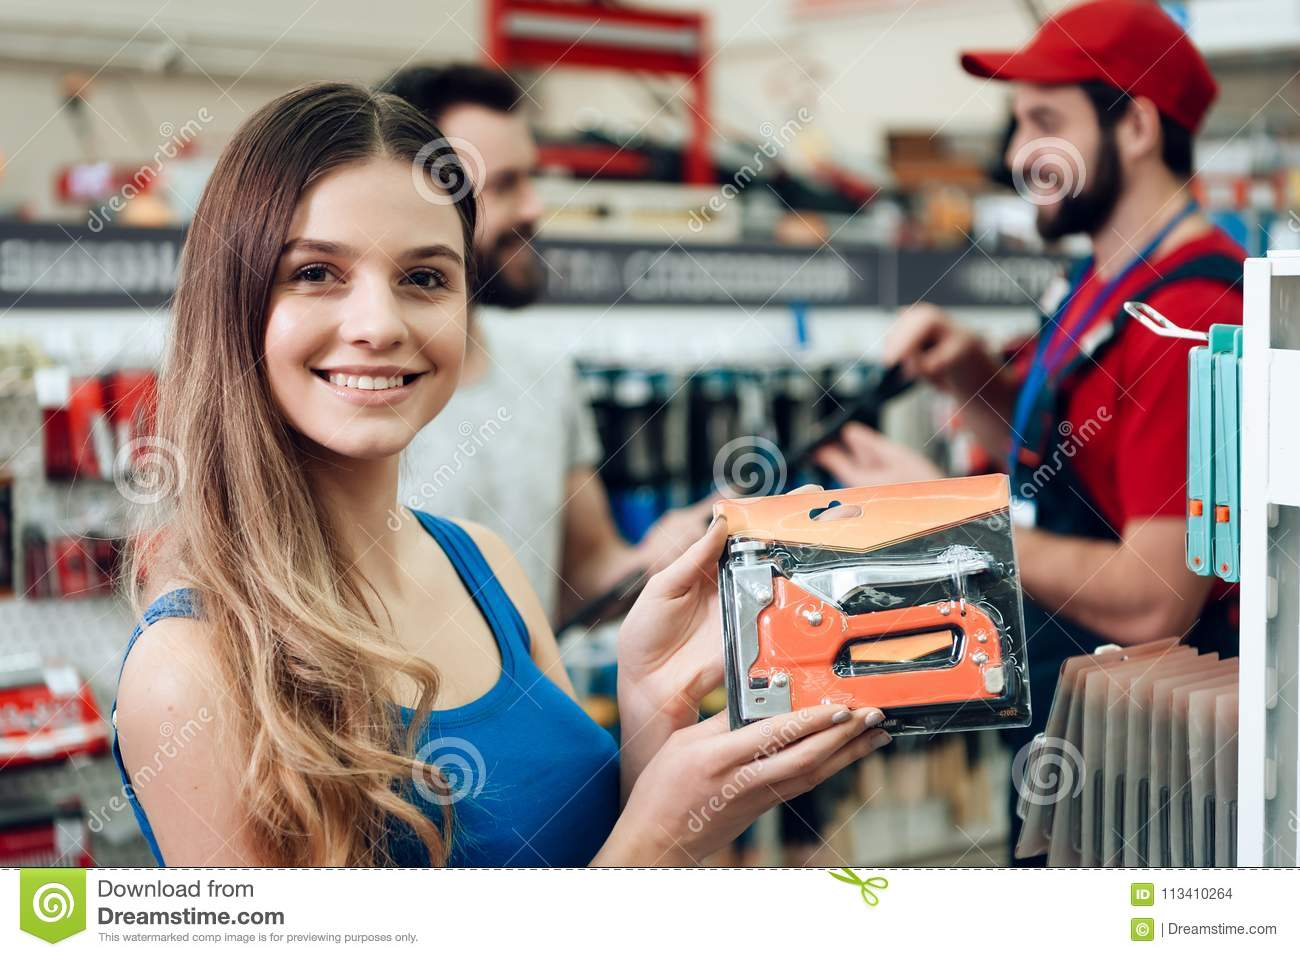 Female client is posing with new stapler in power tools store.